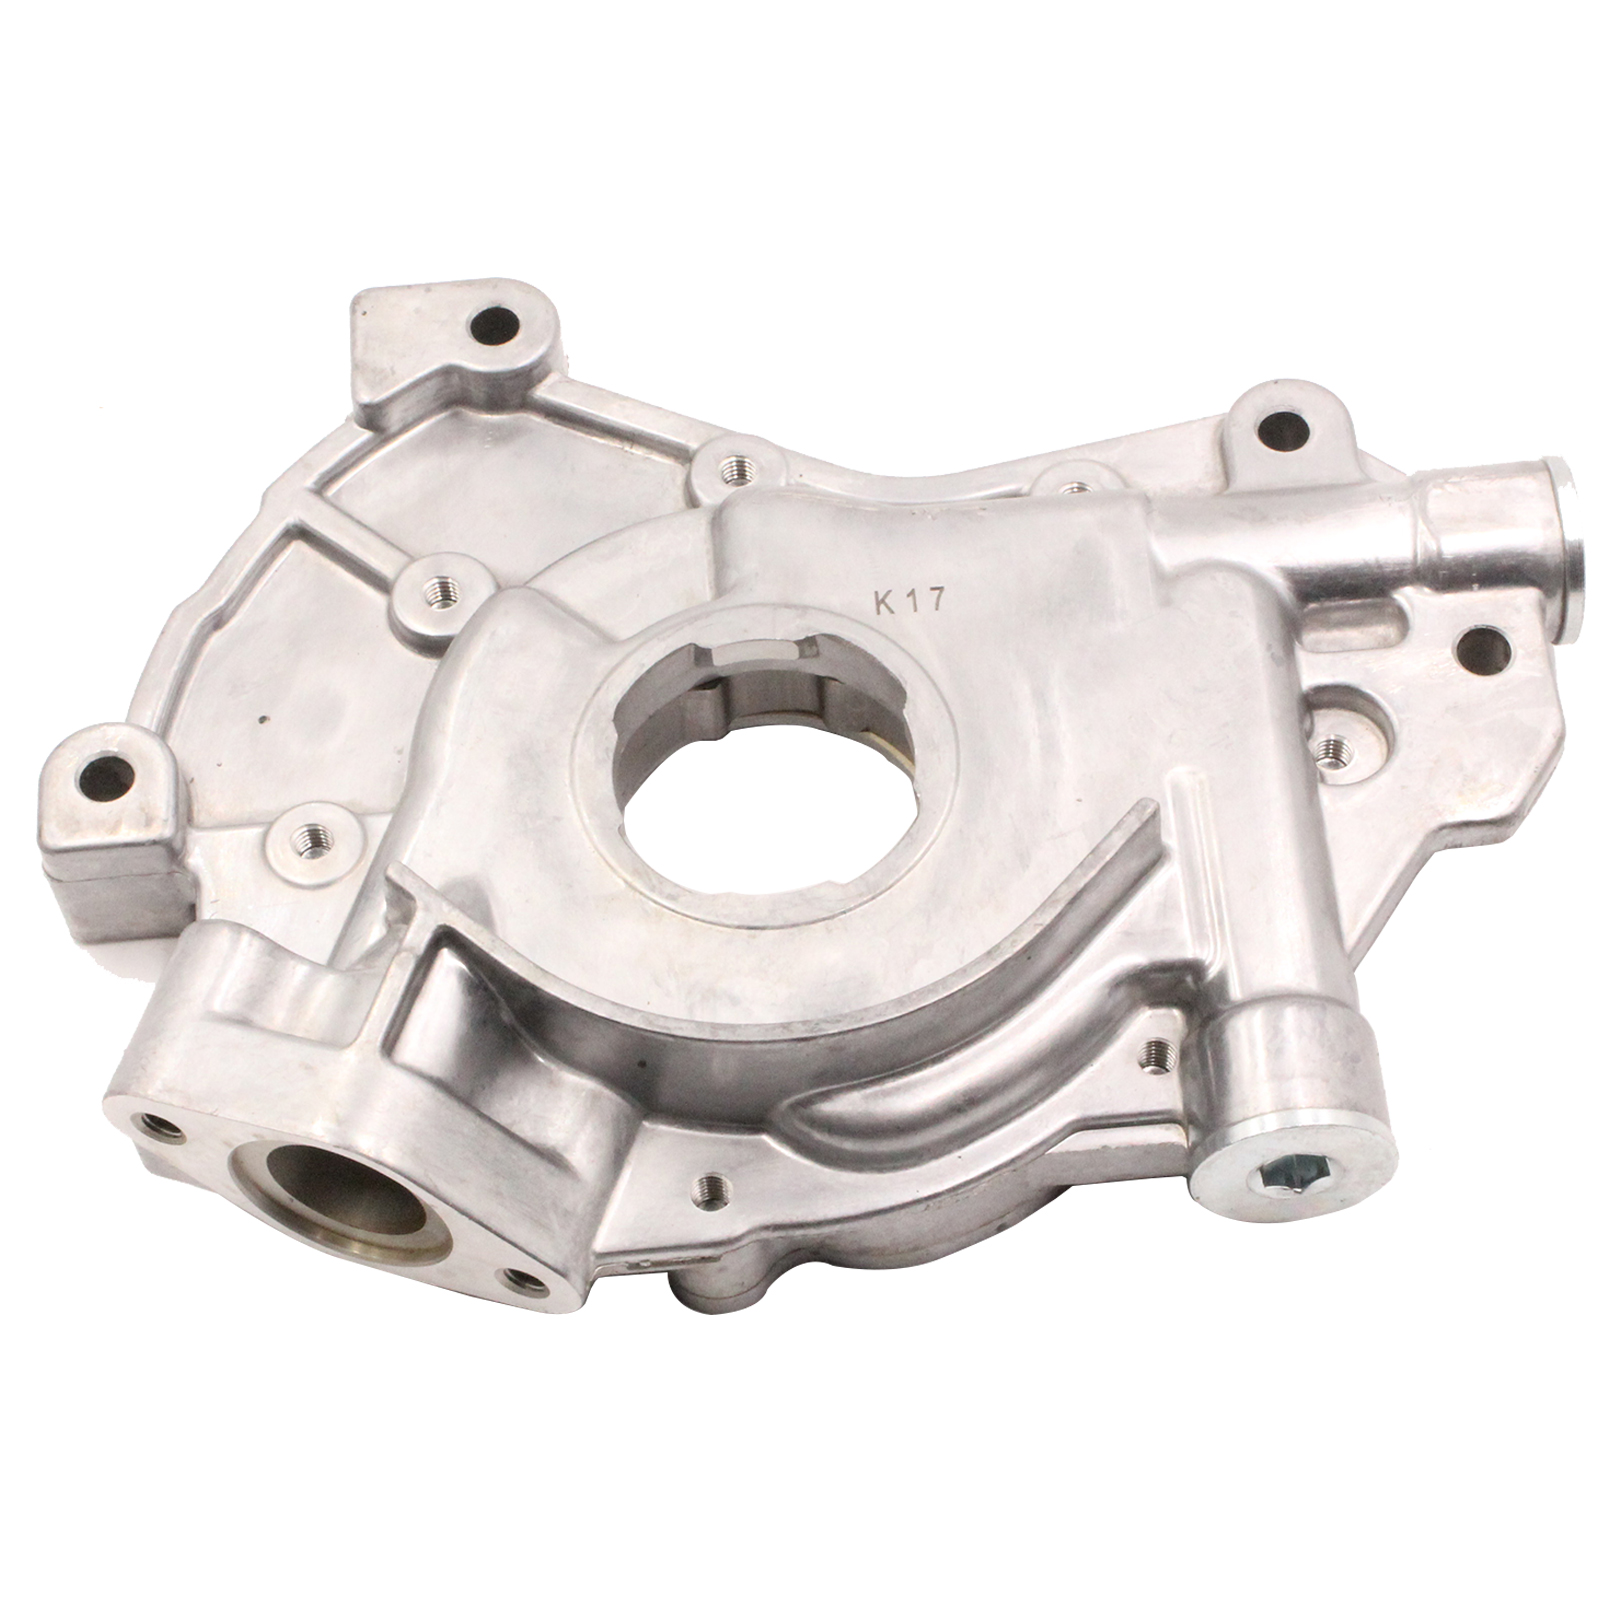 For 94-04 Ford Lincoln Mercury 4.6L 5.4L 6.8L V8 V10 SOHC Oil Pump